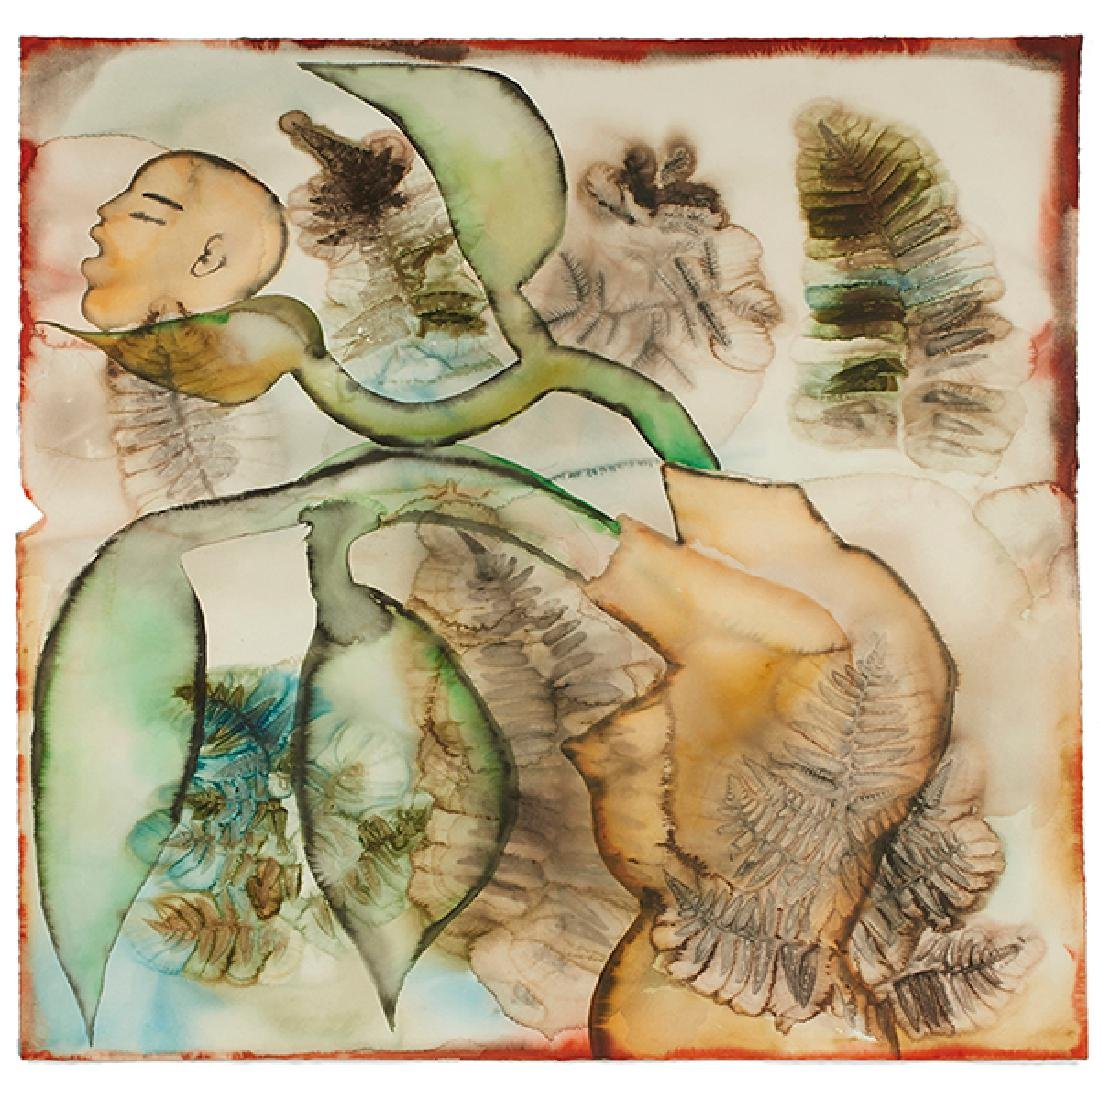 Francesco Clemente, (Italian, b. 1952), To Be Titled,